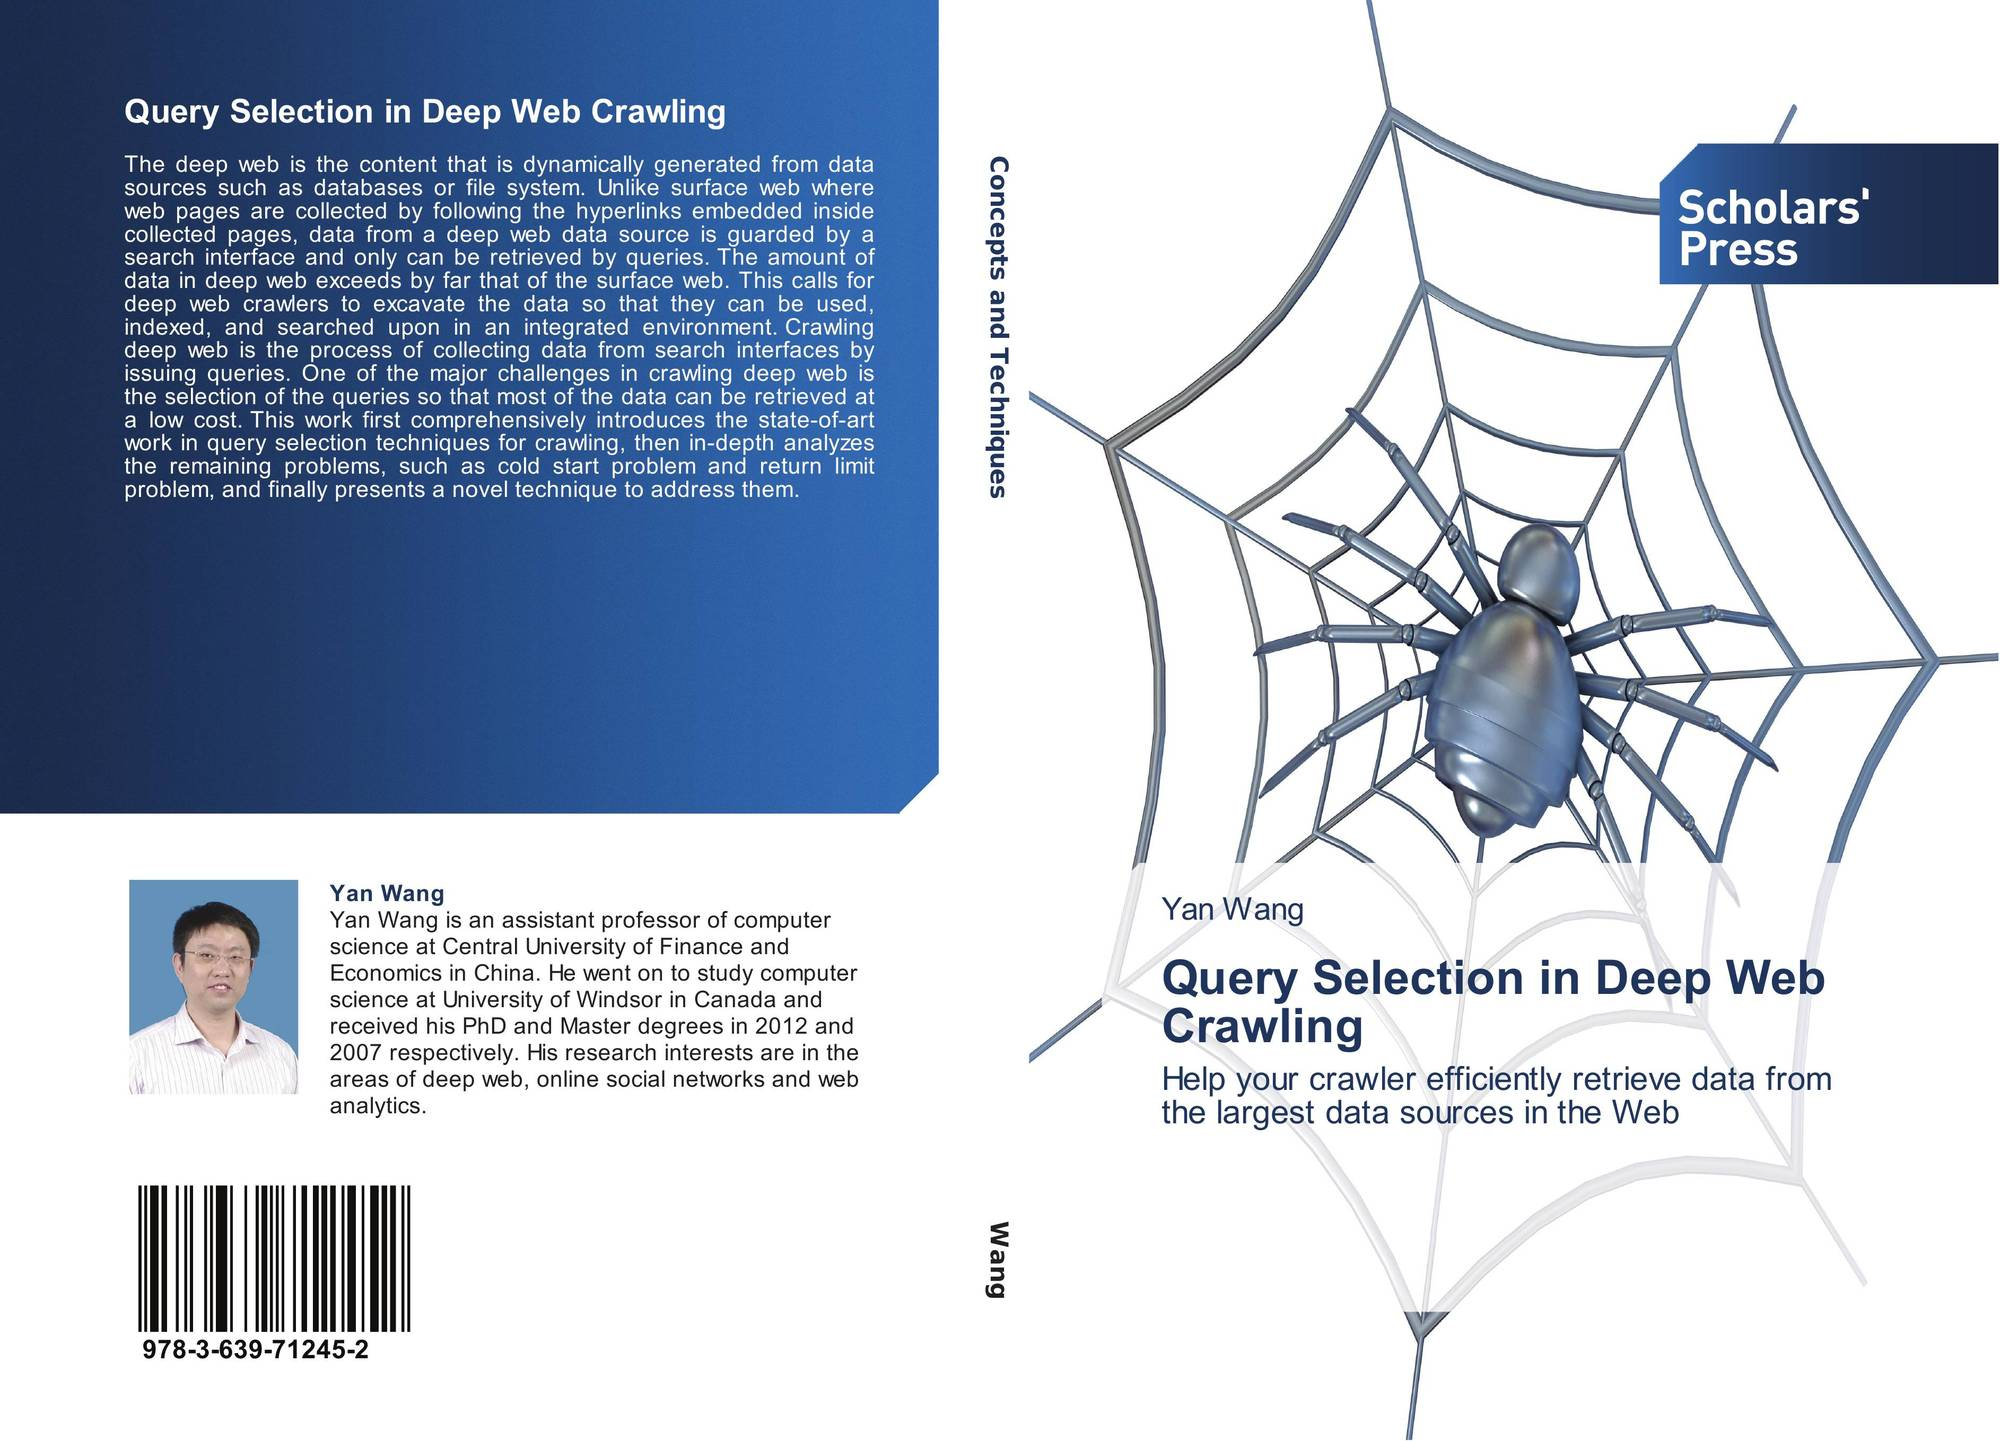 Query Selection in Deep Web Crawling, 978-3-639-71245-2